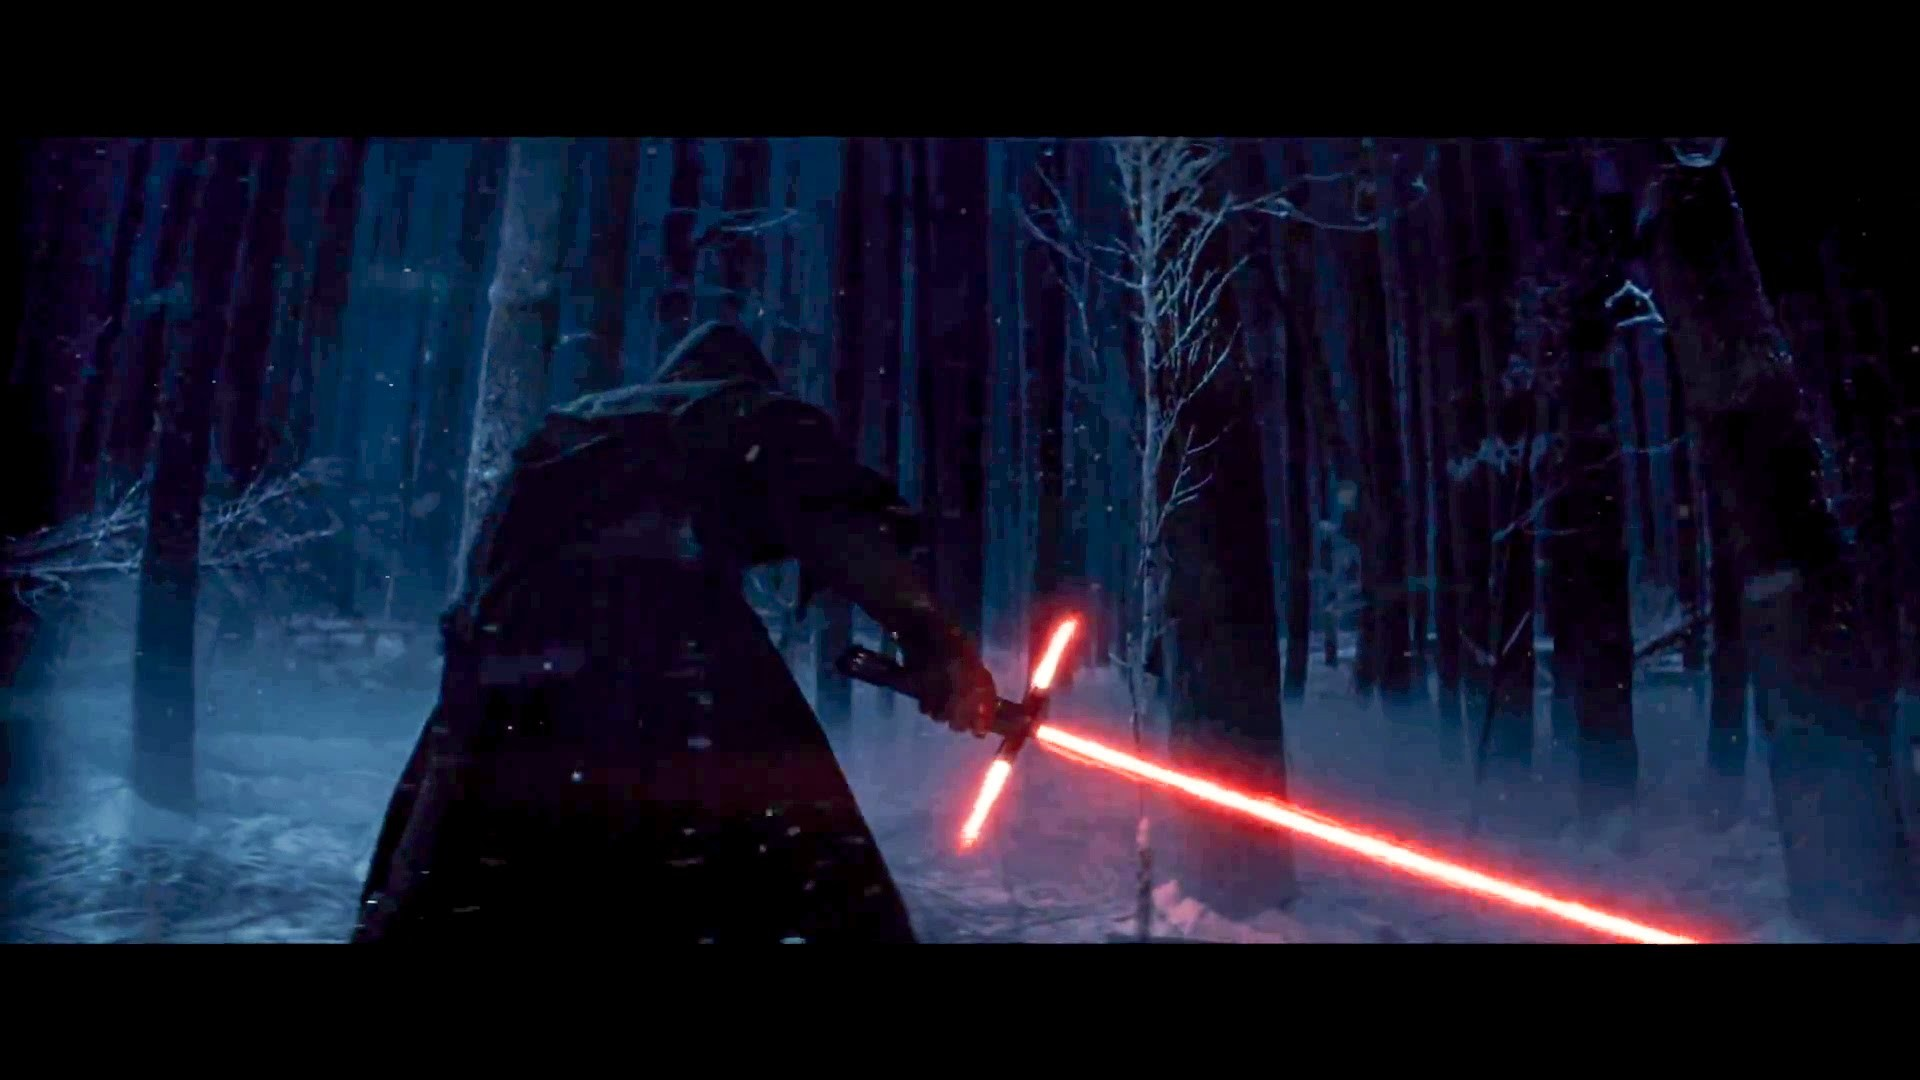 Star Wars The Force Awakens Wallpaper 1920x1080 Download Free